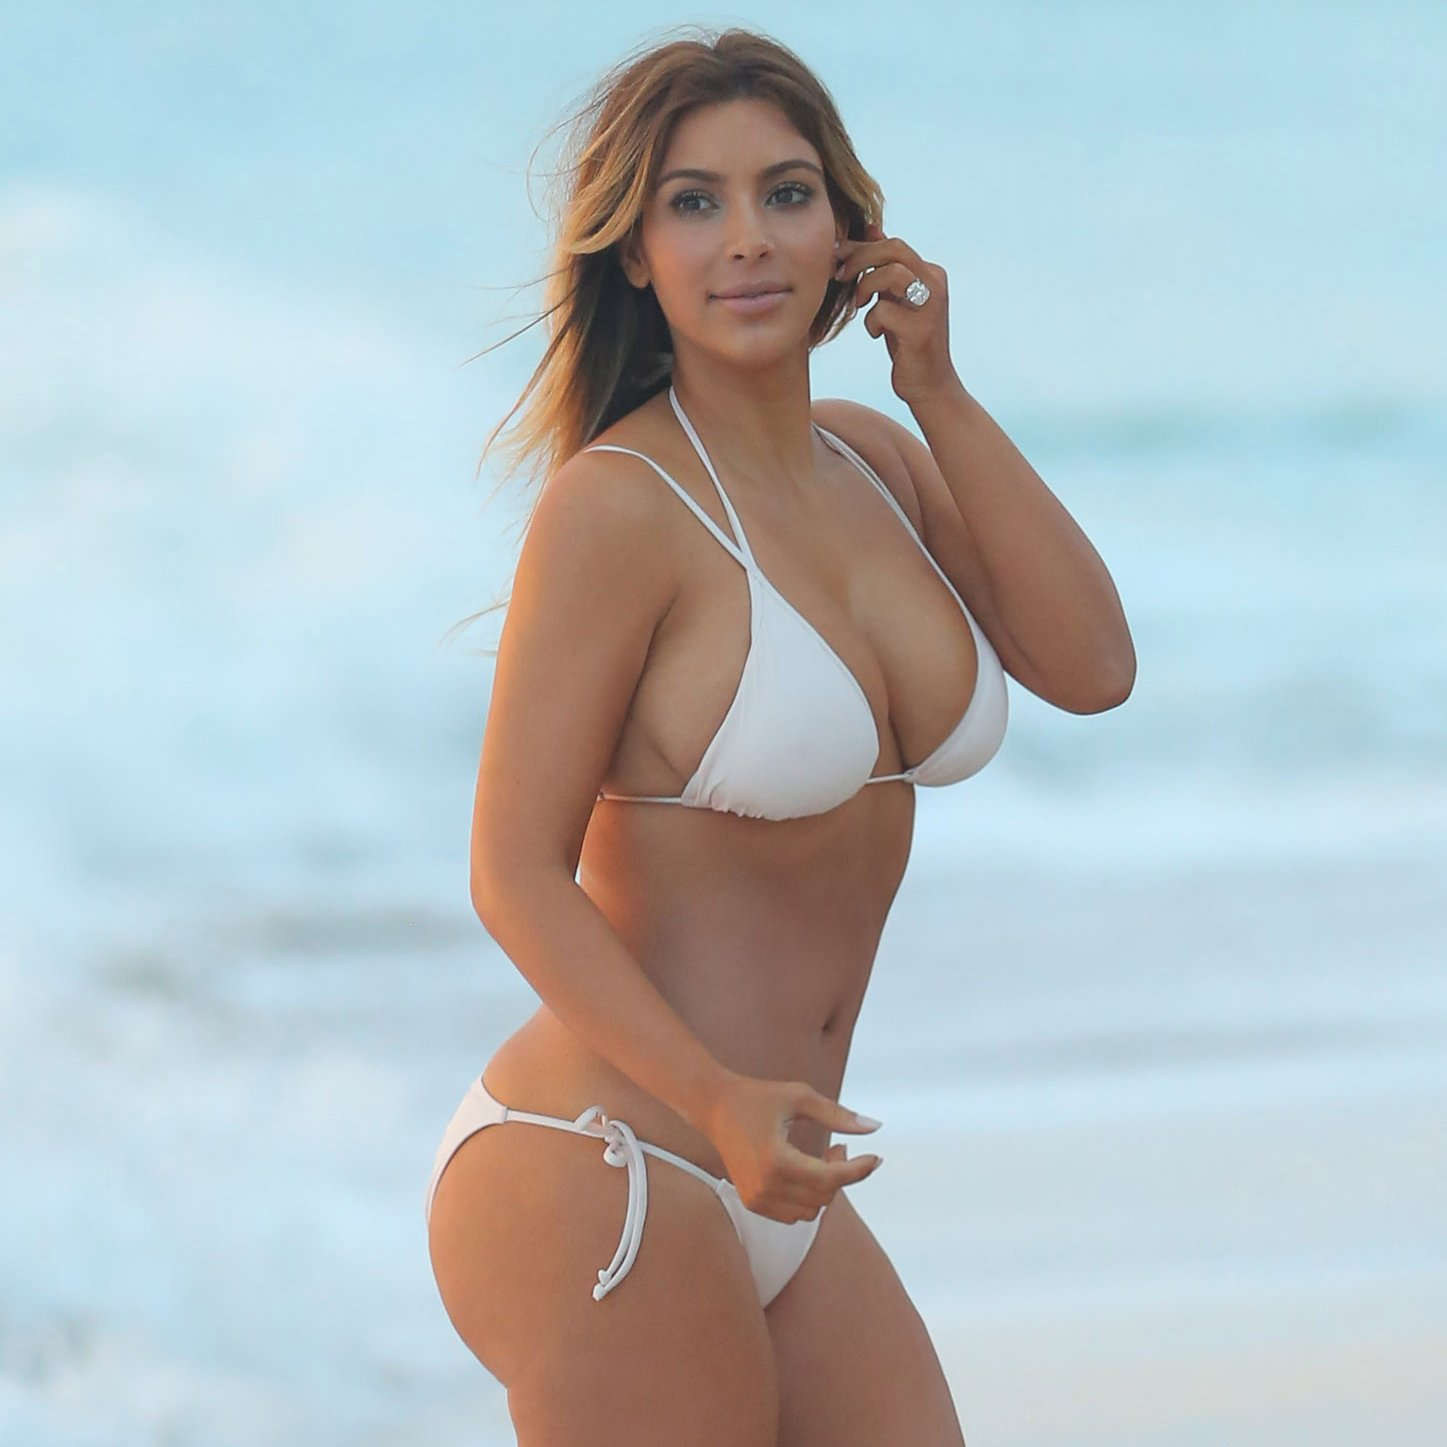 Kim-Kardashian-White-Bikini-Pictures-After-Baby